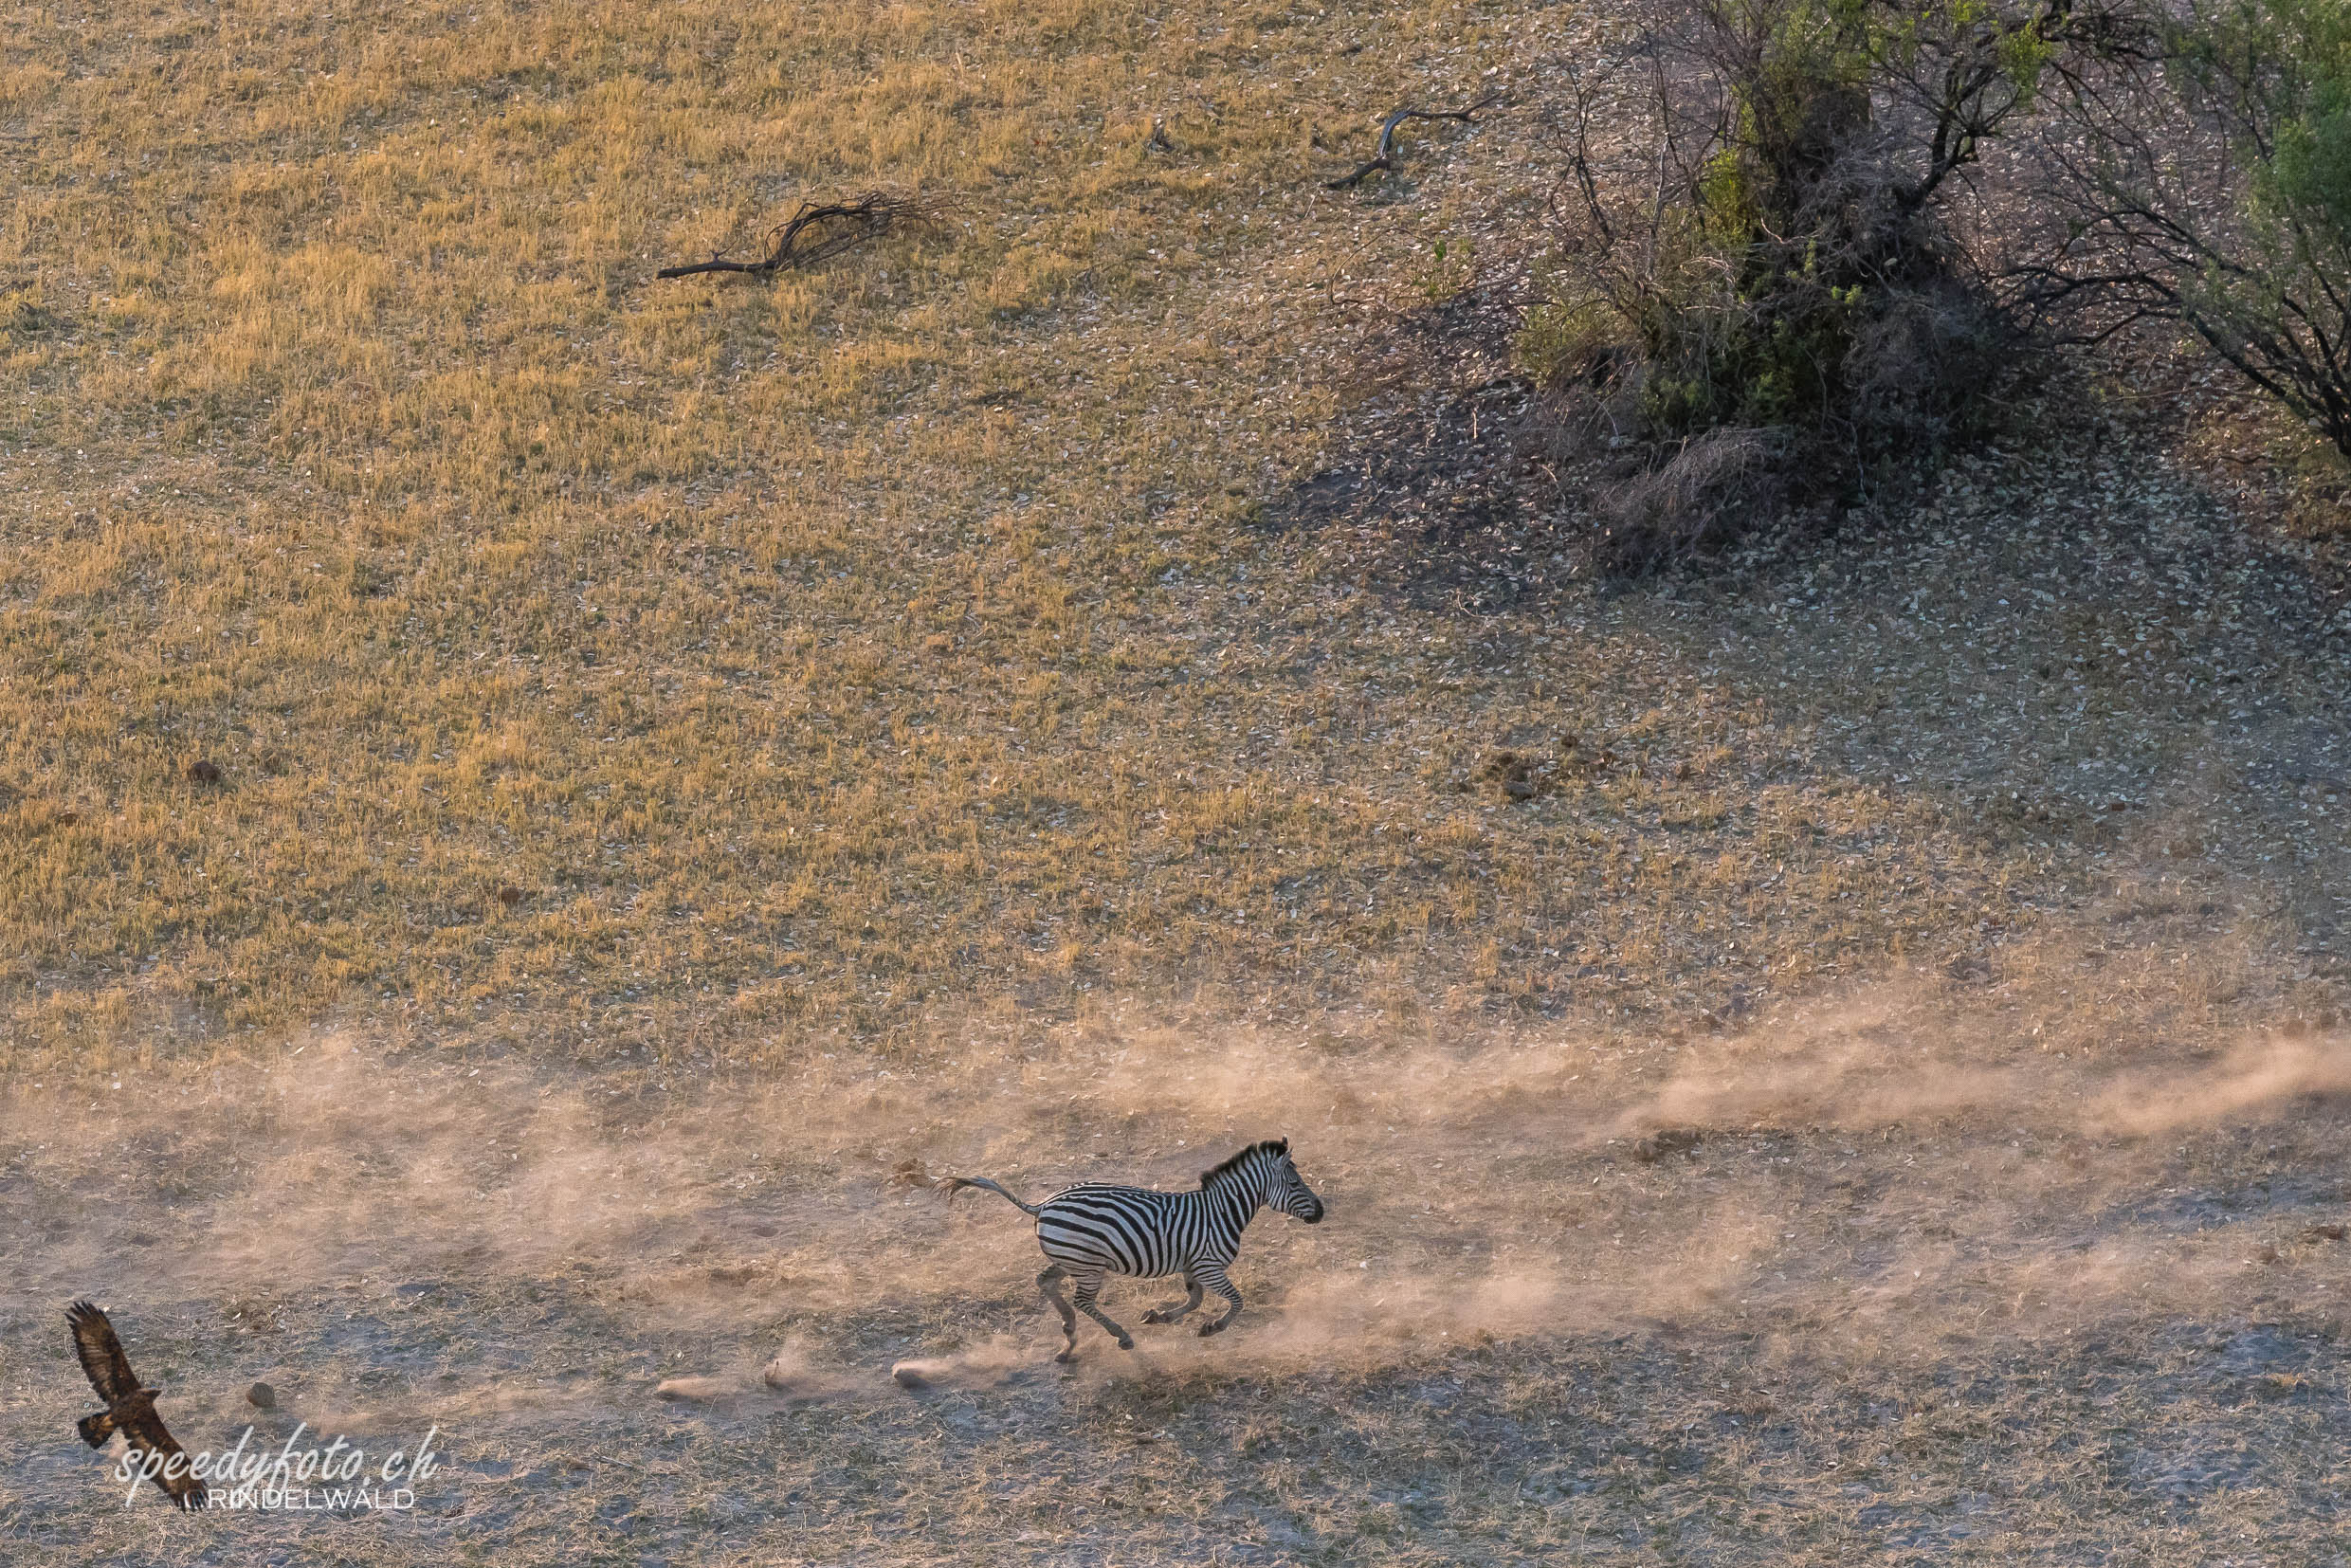 Running Zebra - Aerial View